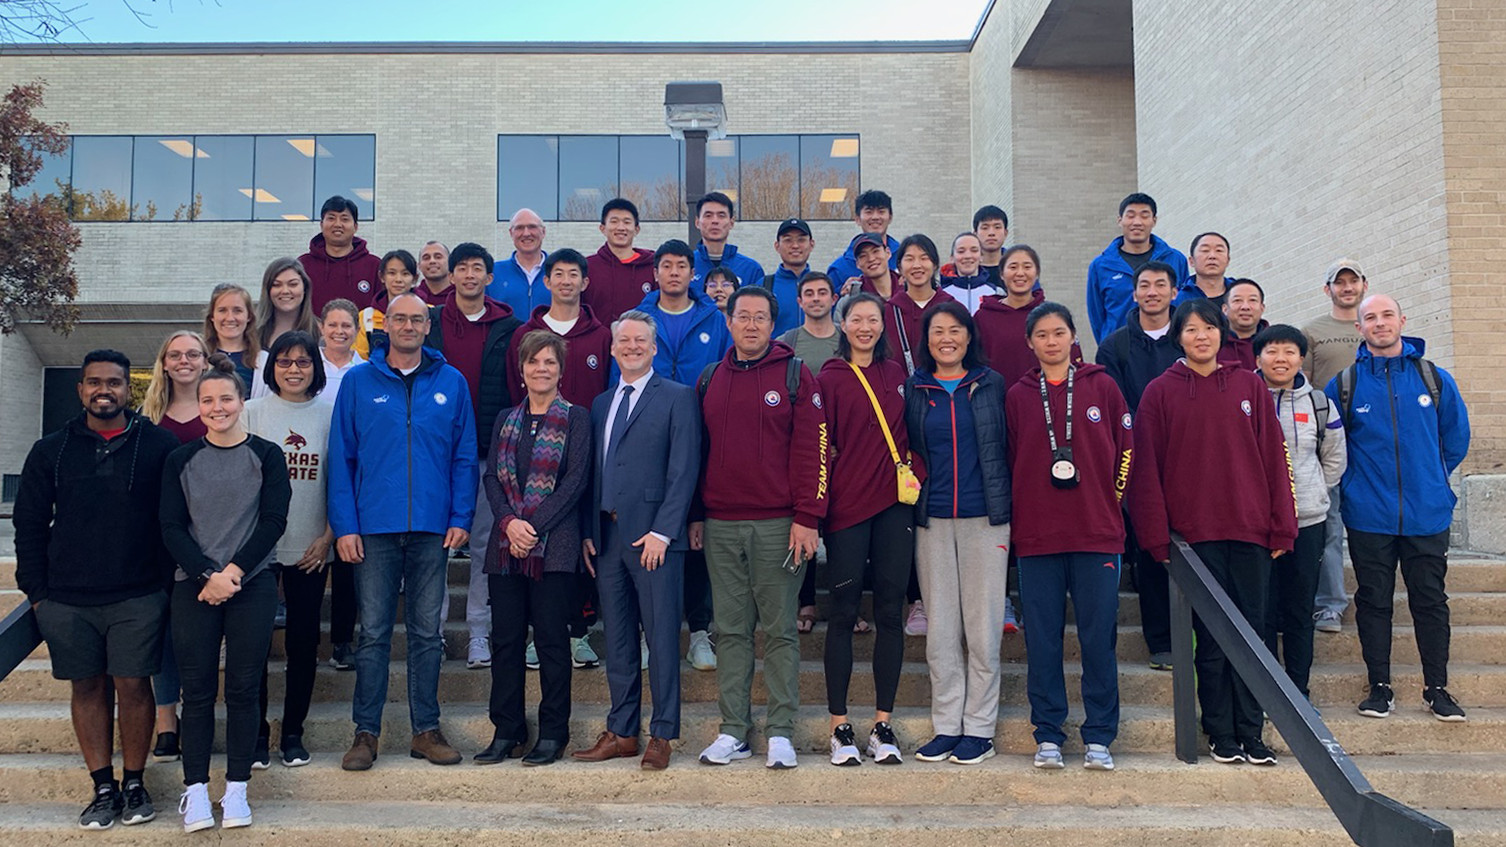 College of Education faculty and graduate students pose with members of the Chinese Olympic Rowing Team